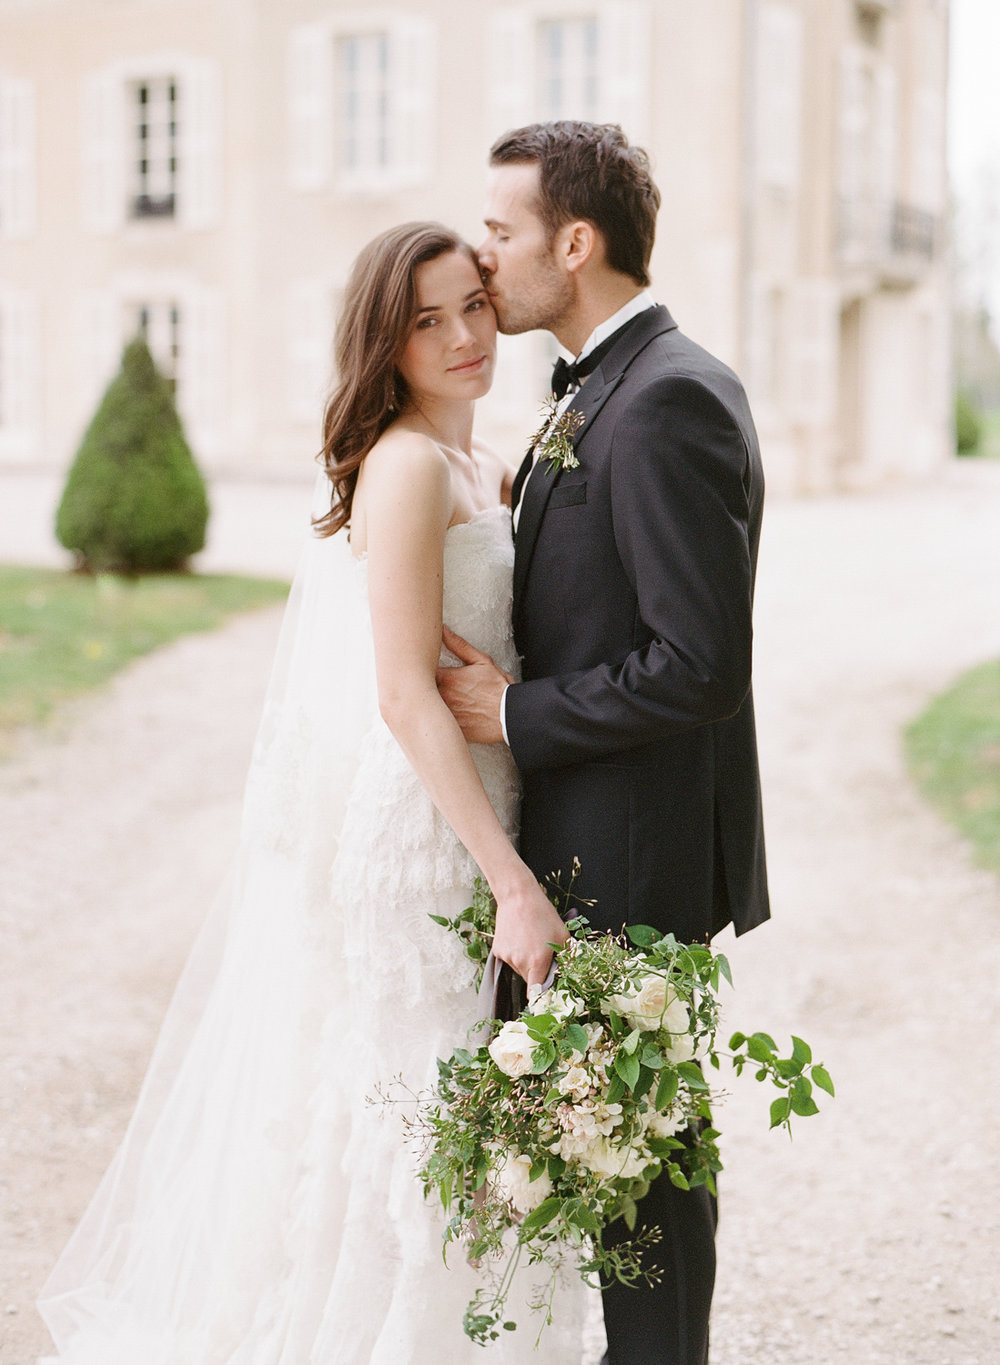 A groom kisses his bride after a wedding in Burgundy, France; Sylvie Gil Photography